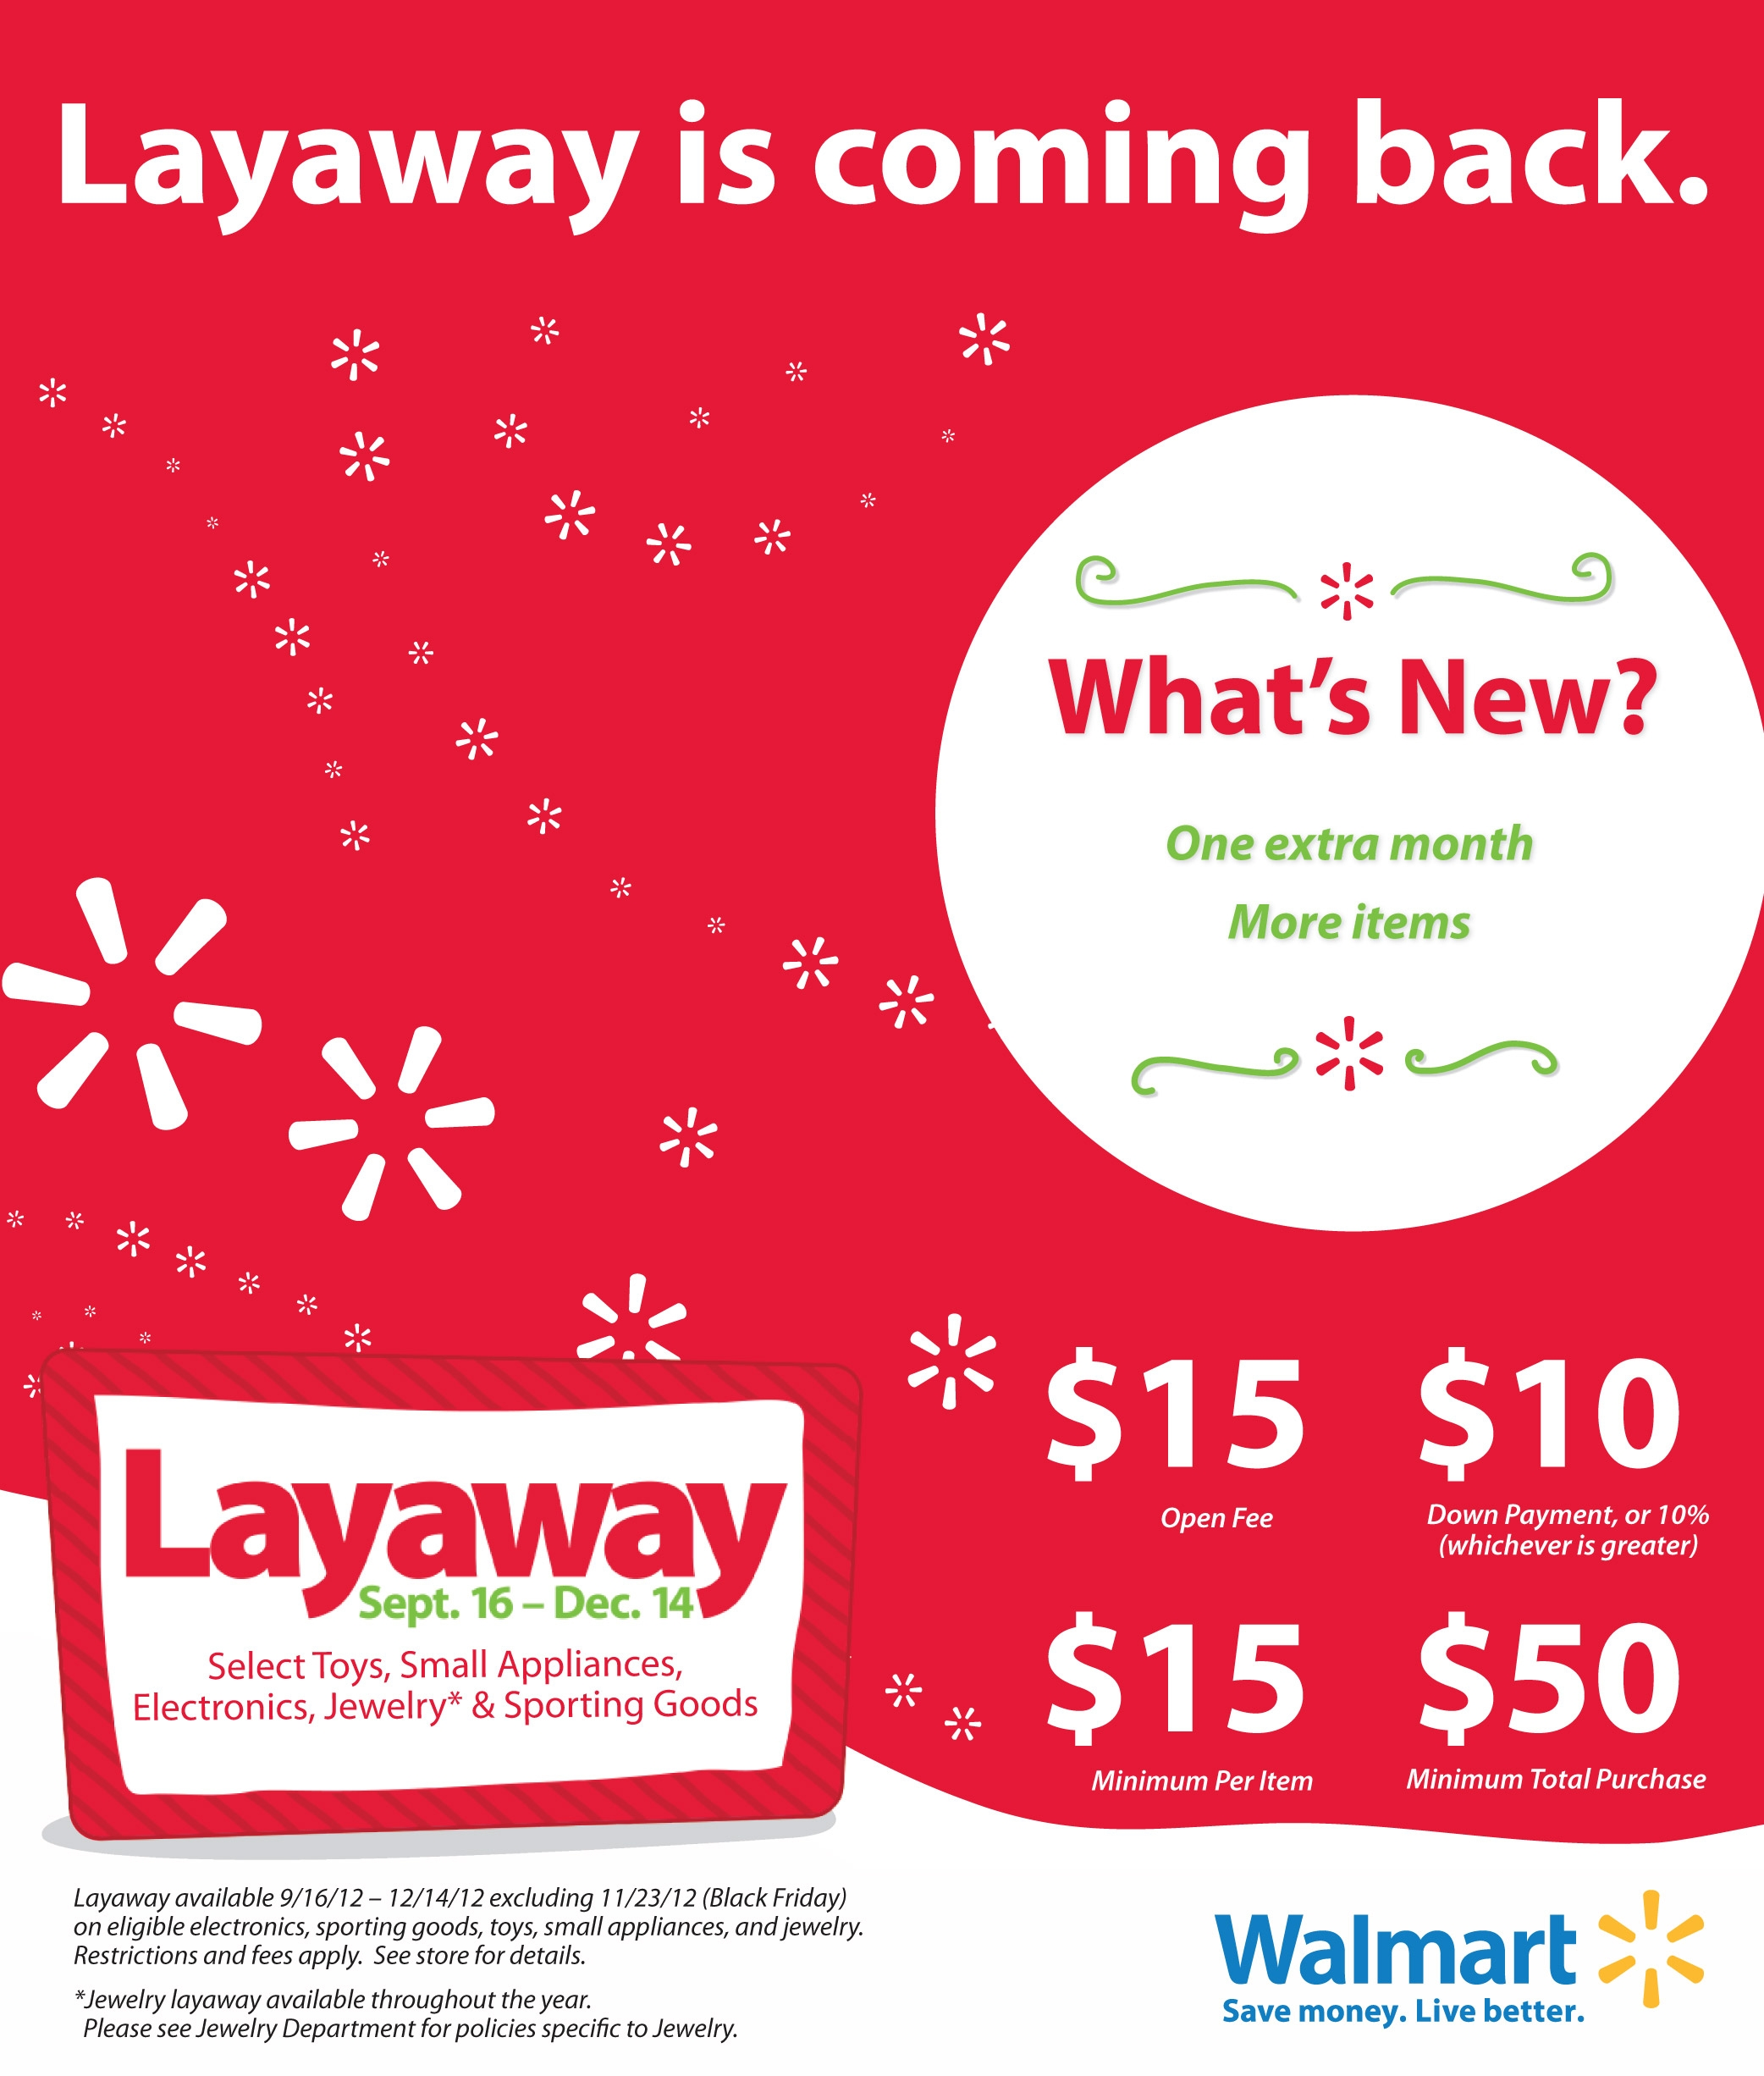 christmas layaway is back and better at walmart